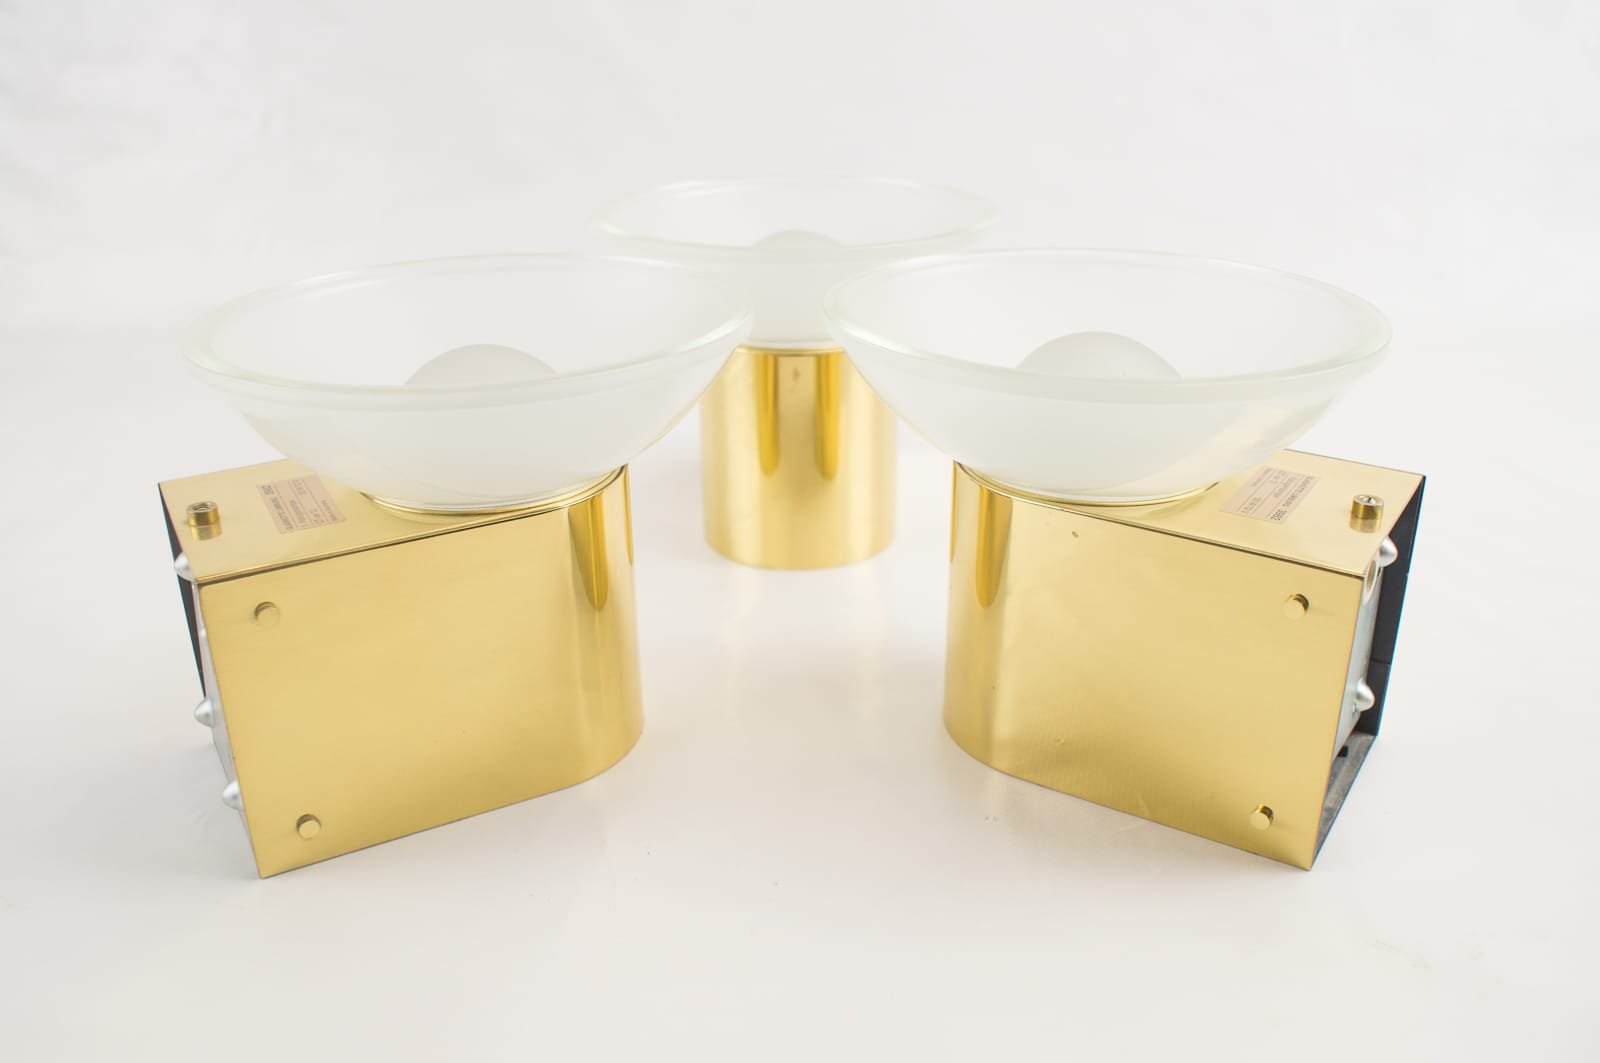 Golden Wall Lamps : Golden Wall Lamps from Limburg, 1970s, Set of 3 for sale at Pamono